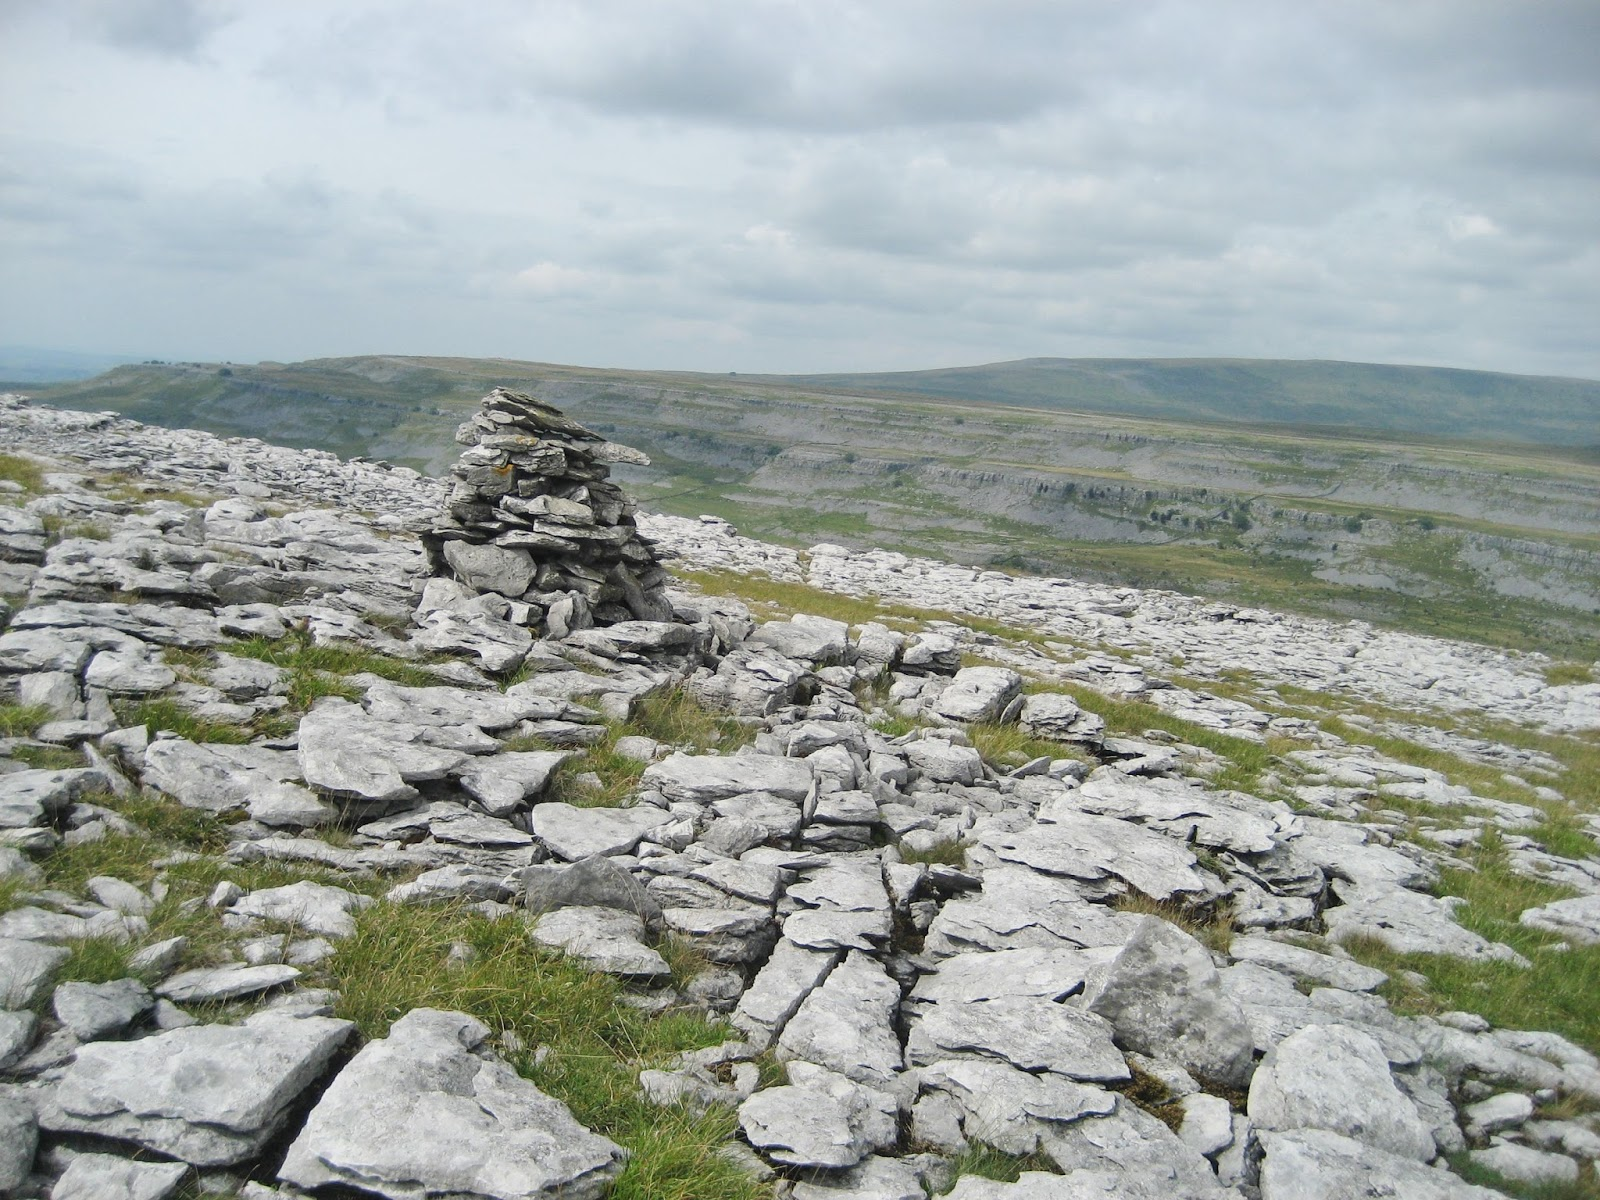 Shattered pavements of Great Scar Limestone above Raven Scars, looking across Chapel-le-Dale to Scales Moor. Stephen Oldfield